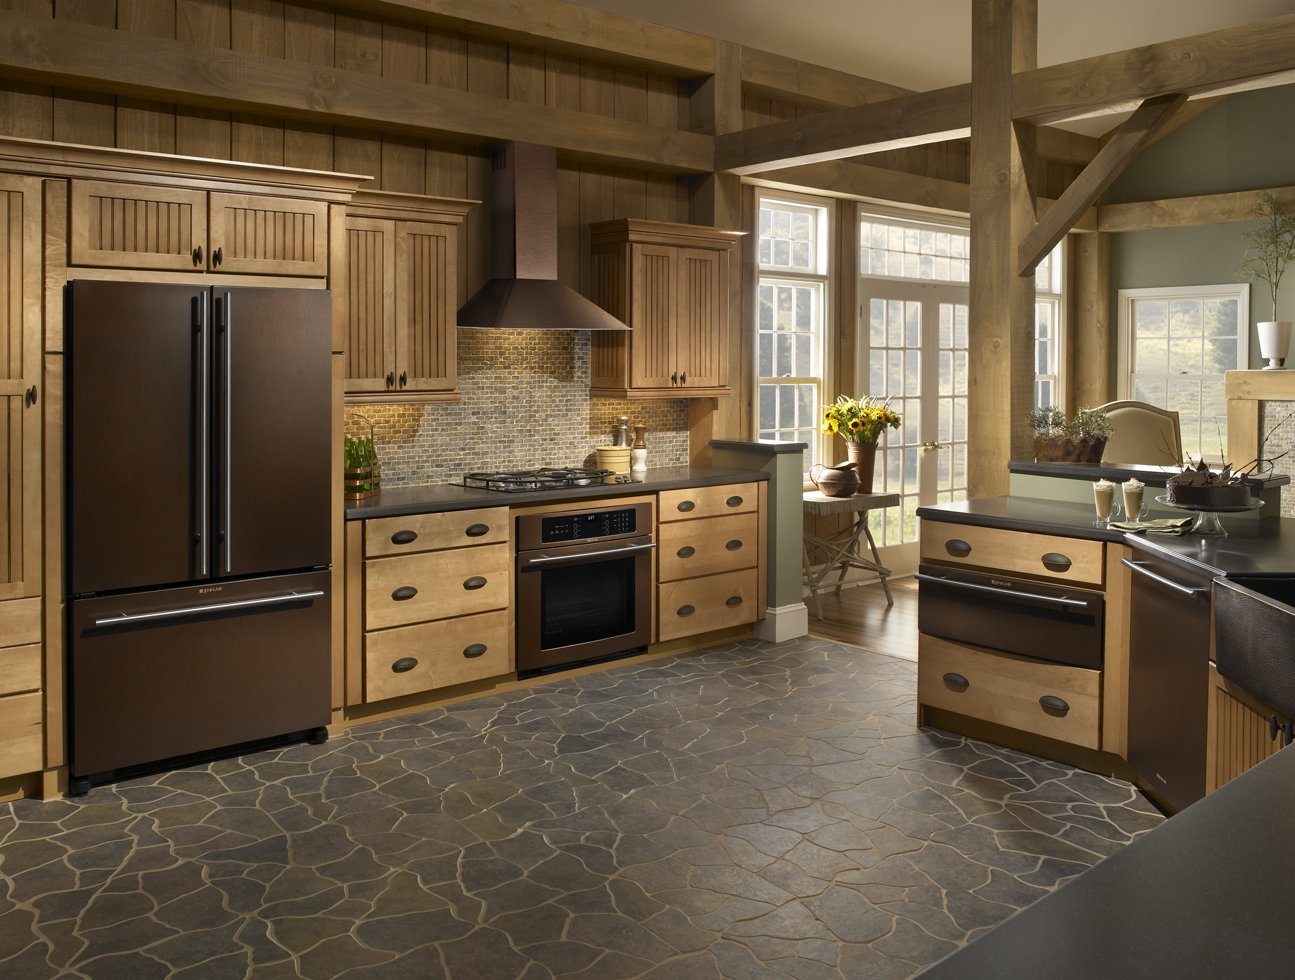 New Kitchen Appliances How Much Does Remodel Cost And Residential Design Jenn Air 39s Finish